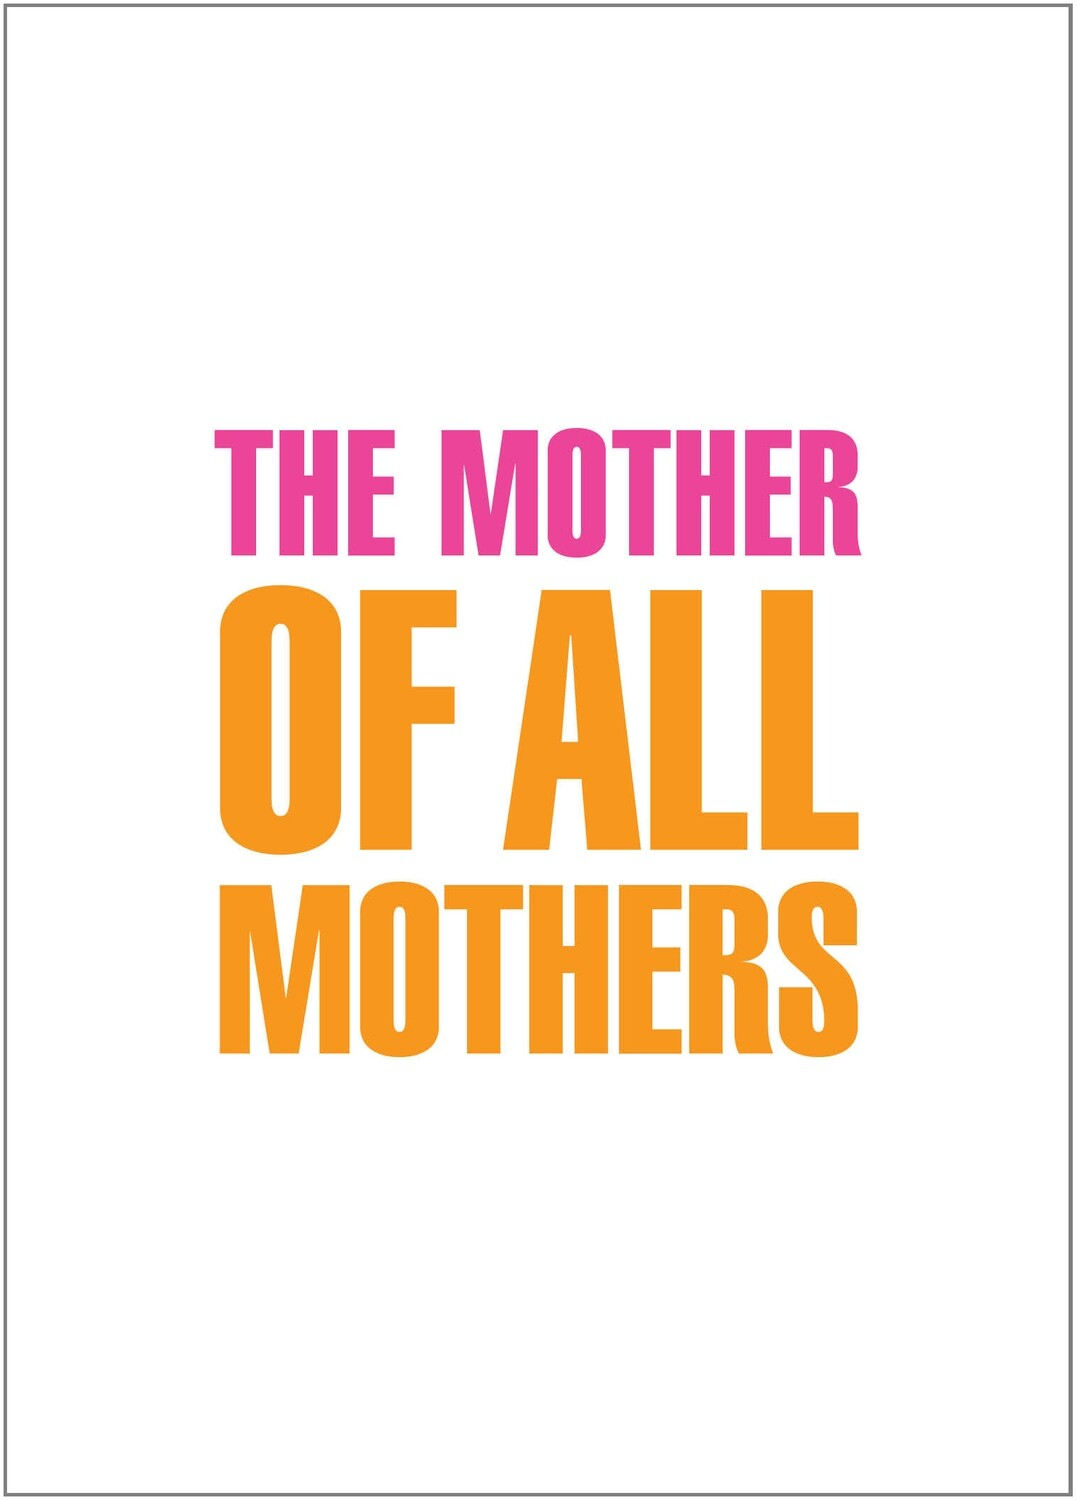 BYU074   Mother's Day Card